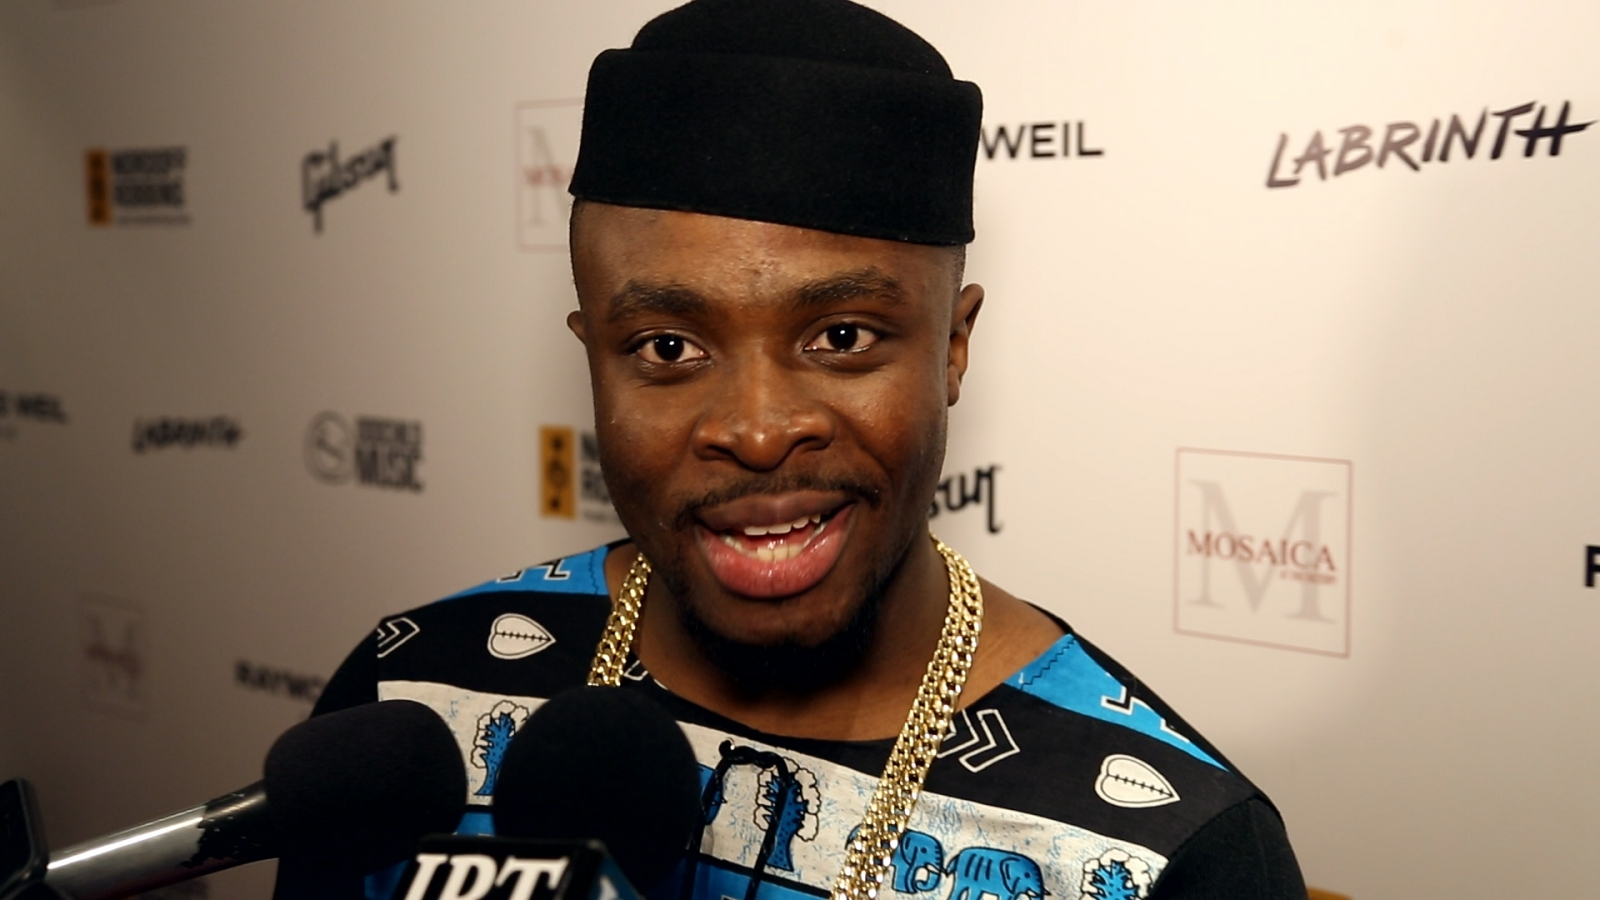 fuse odg dating Azonto the ghanaian dance craze that has swept through every corner of the uk, reaching as far as australia regardless of age, race or religion or whether you're at a wedding, wake or living it up on a wild weekend, the energetic routine will, at some point, make an appearance on the dancefloor.